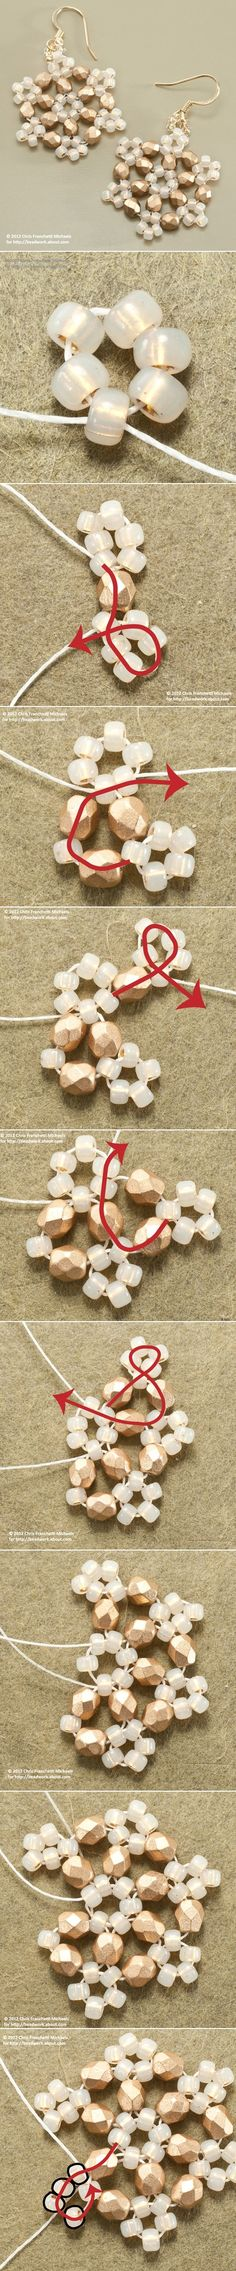 Diy Projects: Beaded Snowflake Earrings: might work well with paper beads...Hmmm